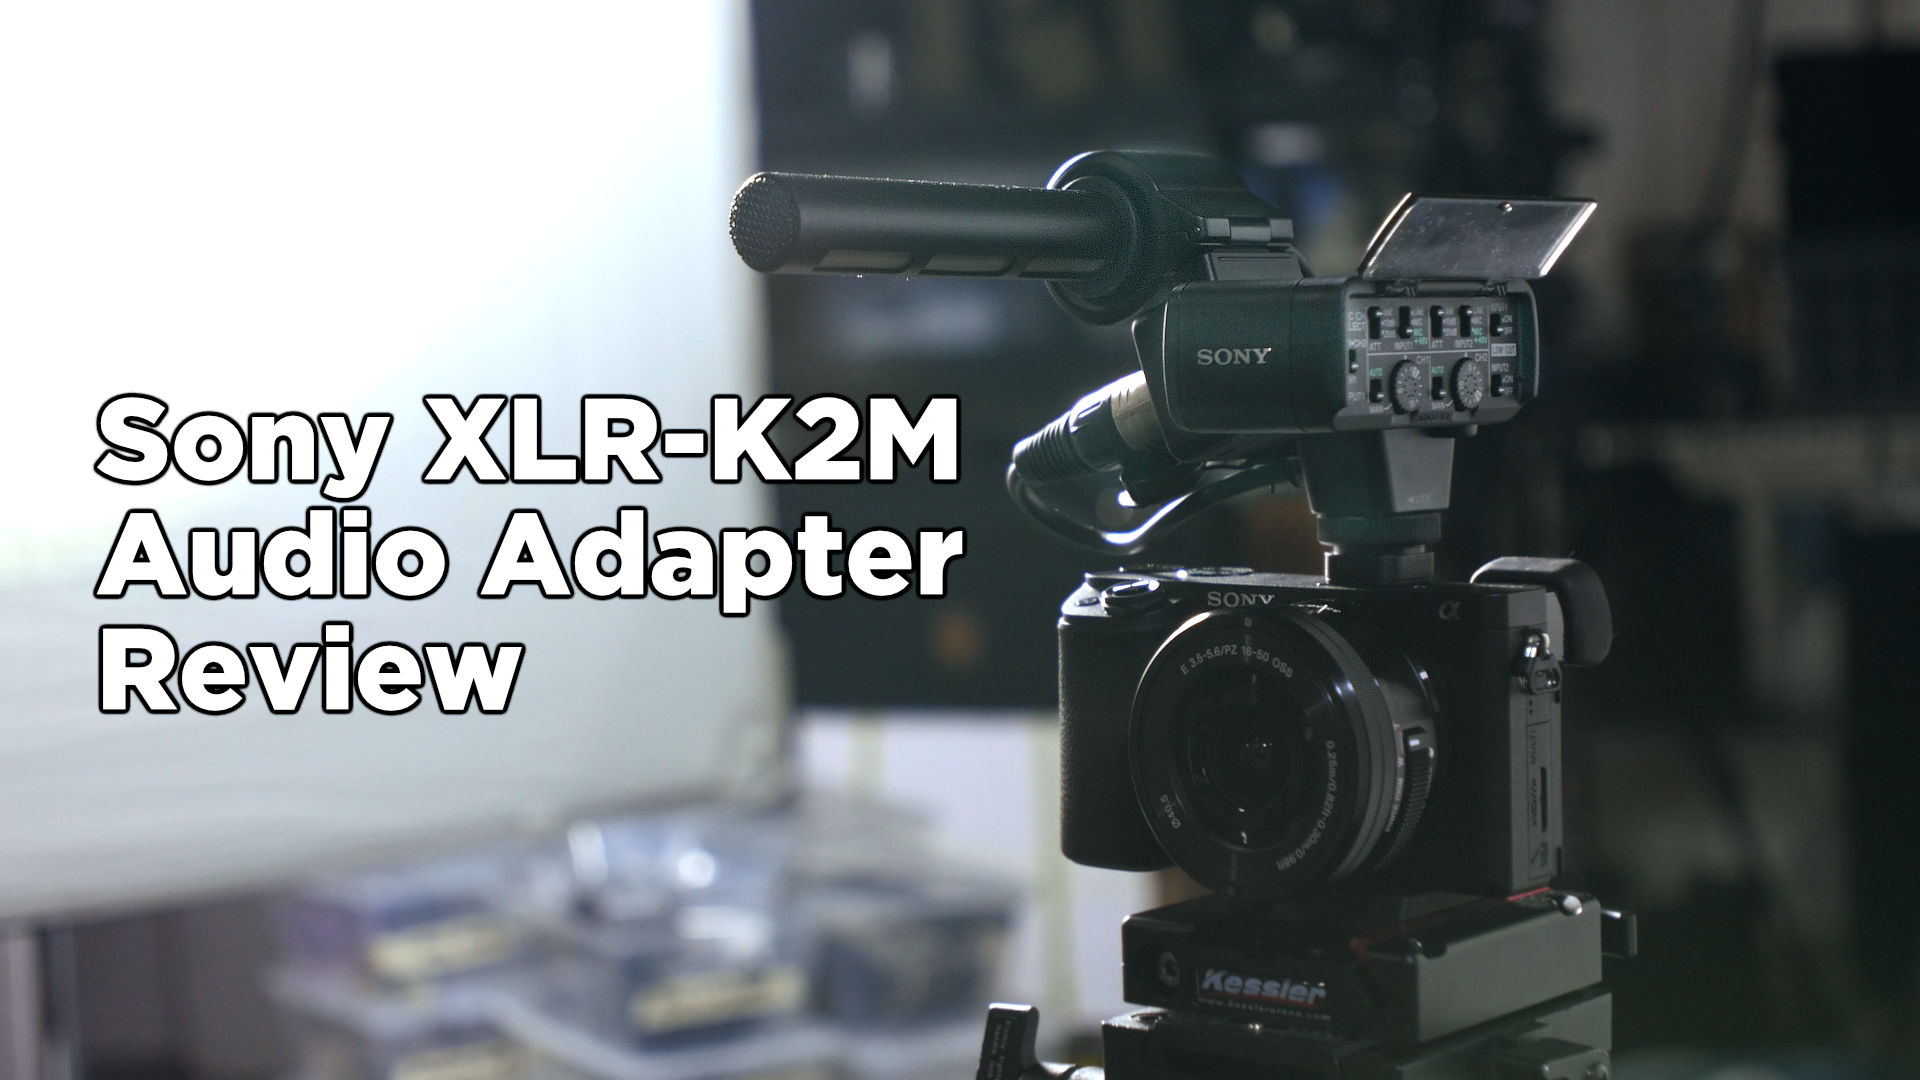 Sony XLR-K2M Audio Adapter Review